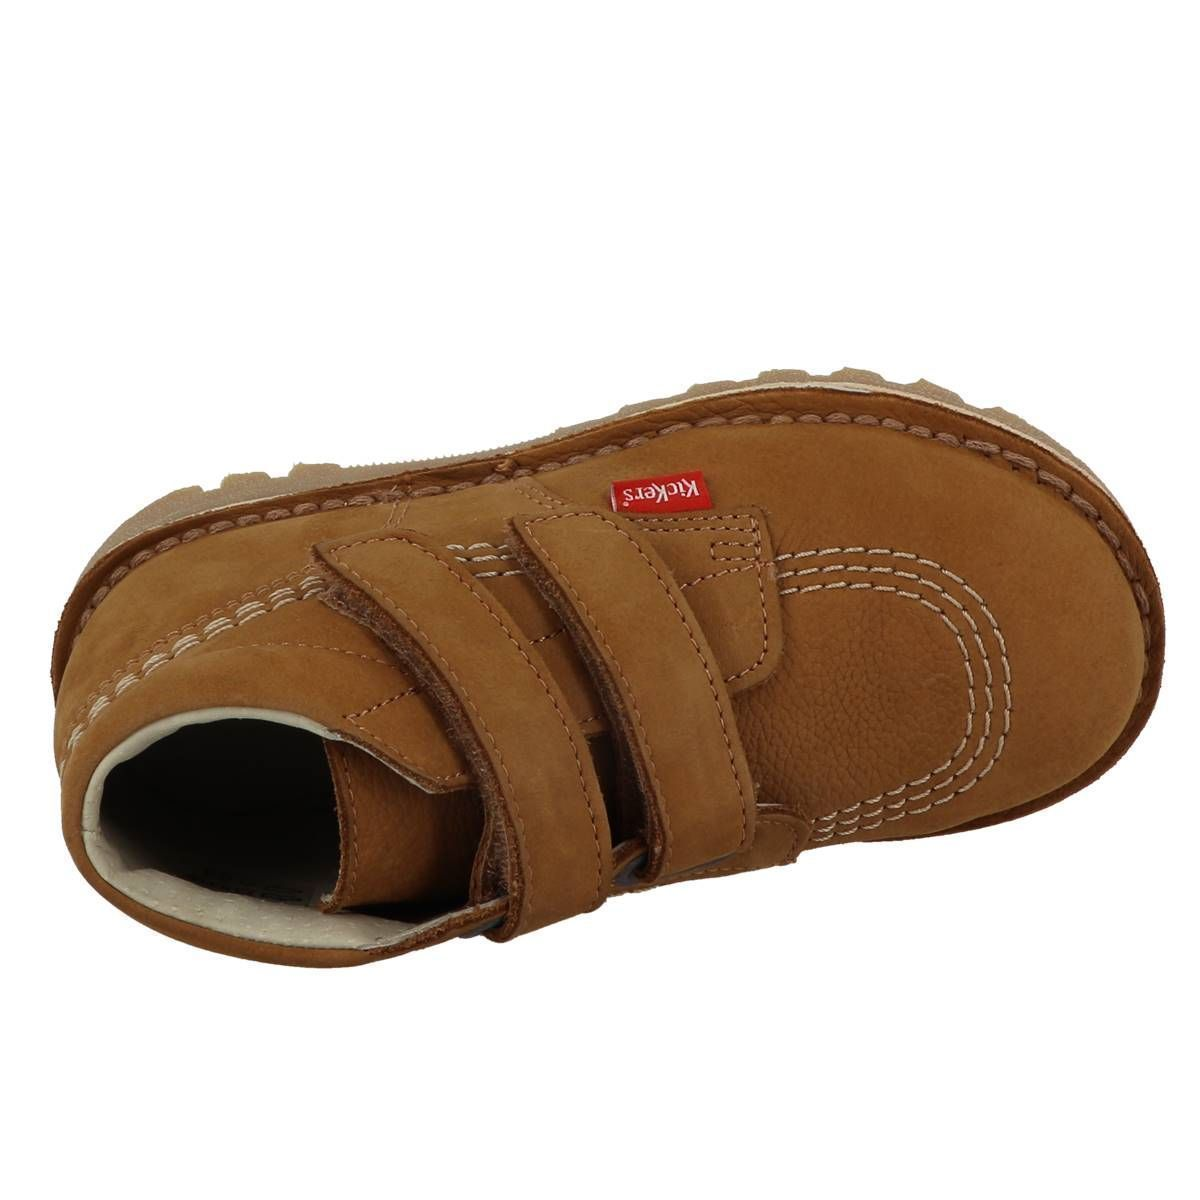 Kickers fille neovelcro camel1157801_6